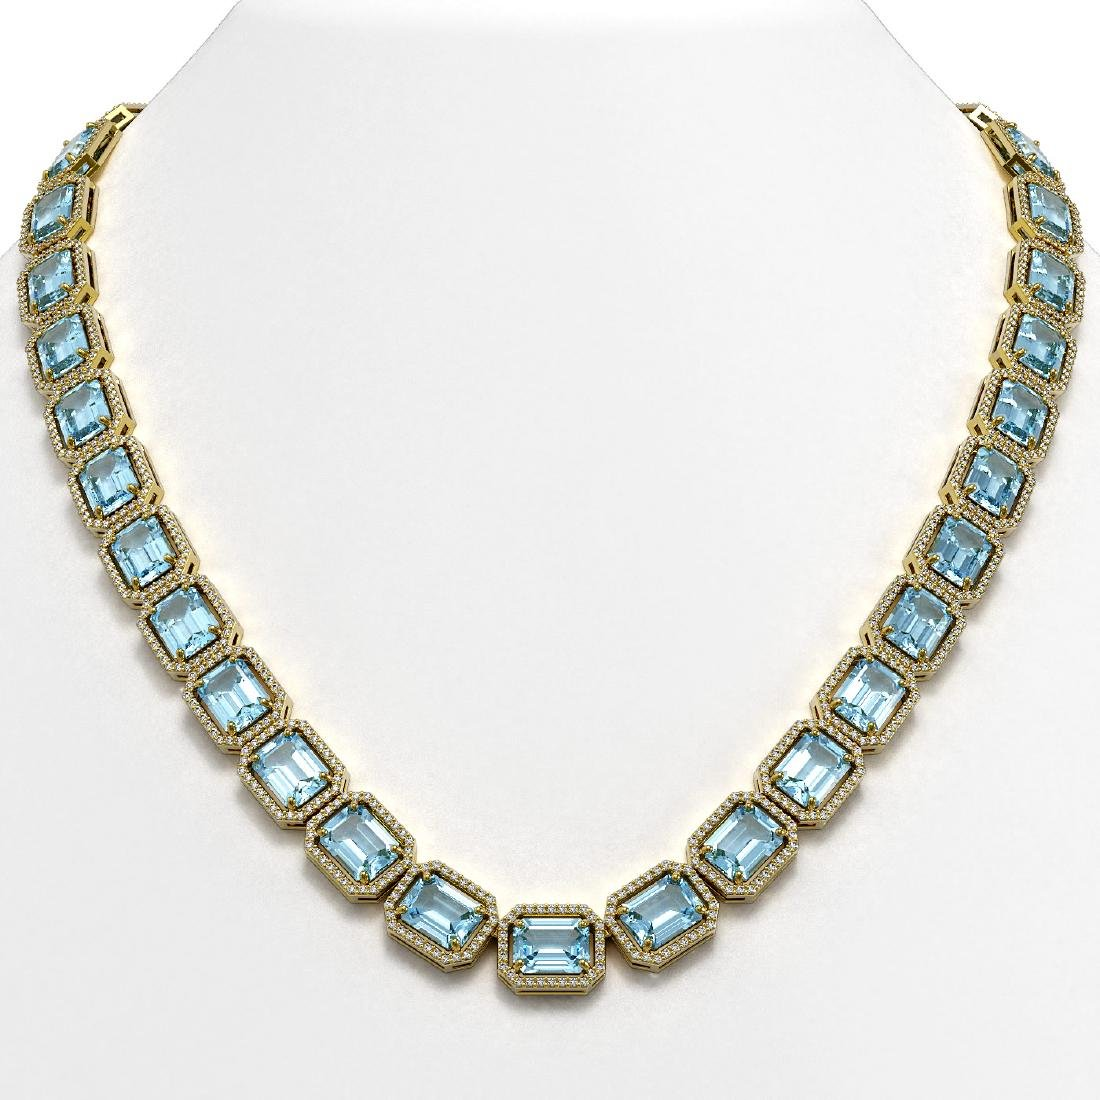 80.98 CTW Aquamarine & Diamond Halo Necklace 10K Yellow